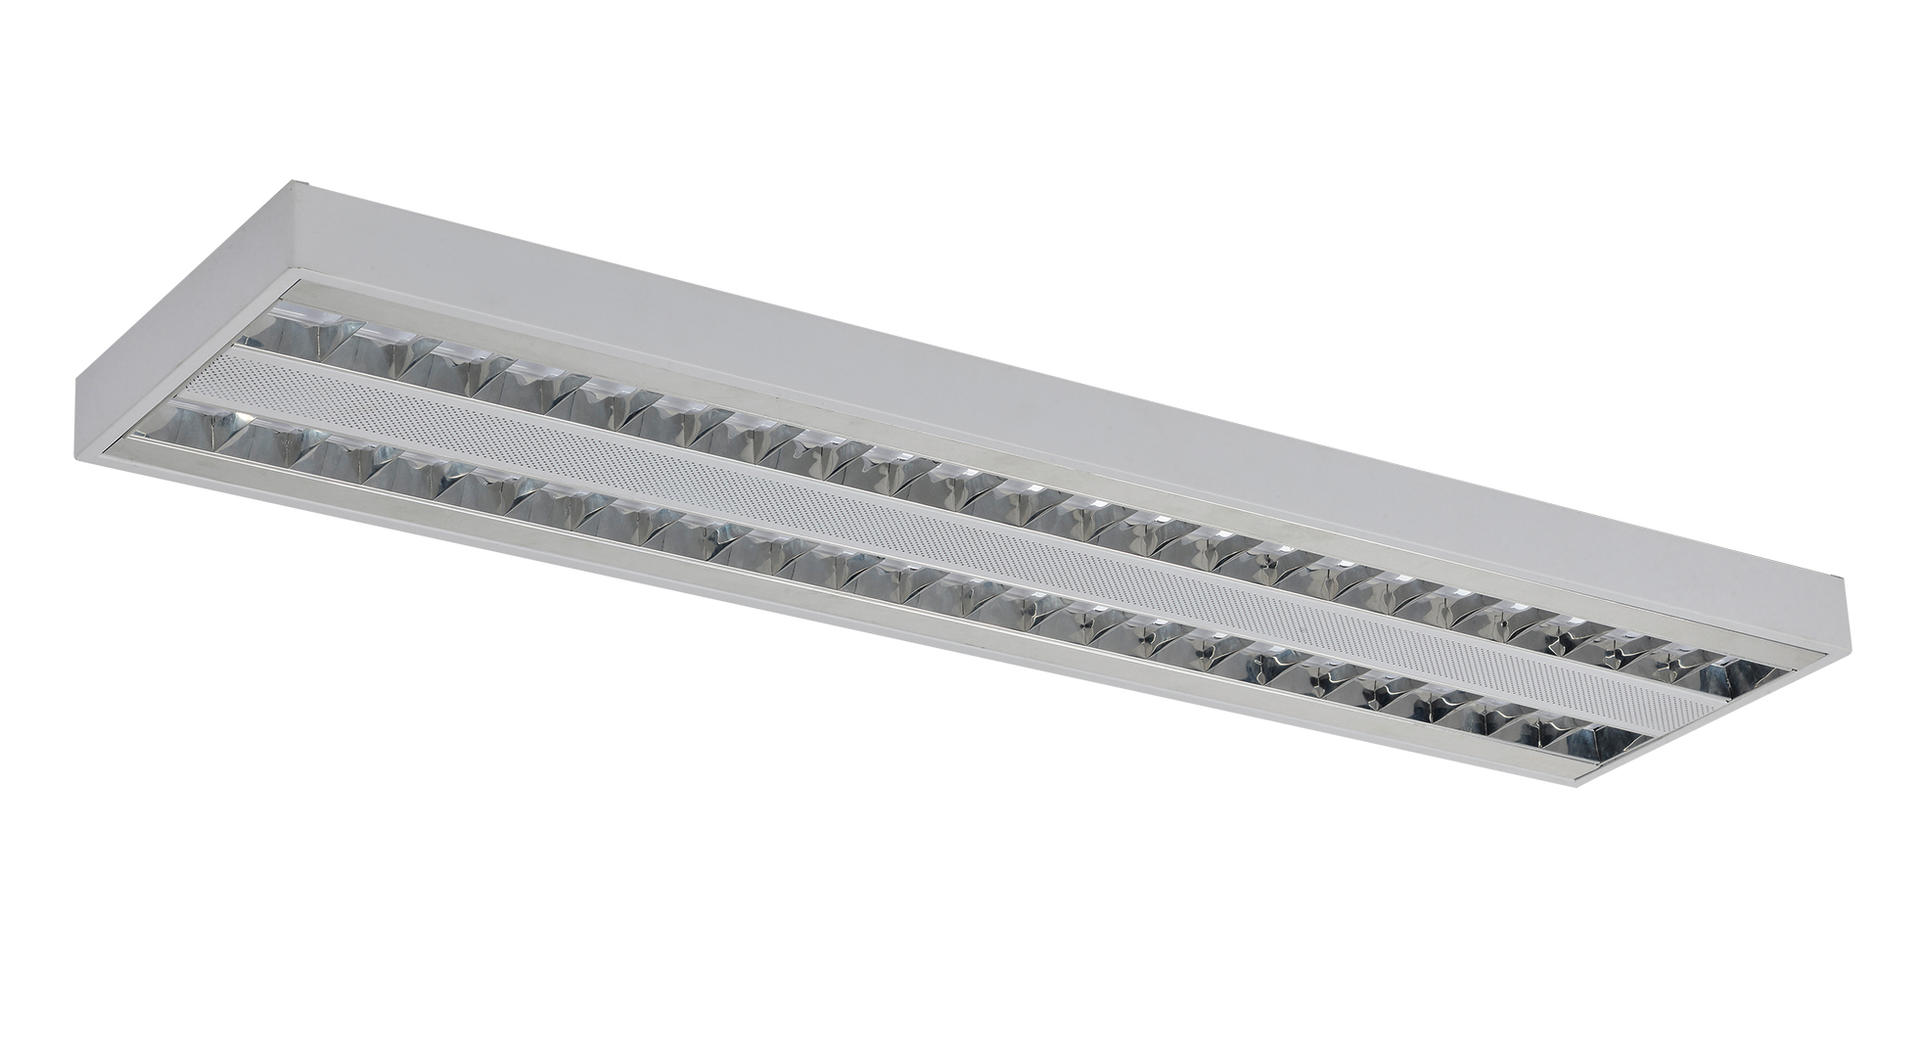 LED Light Low Glare Lumininare 2'x2', 1'x4', 2'x4' UGR<19